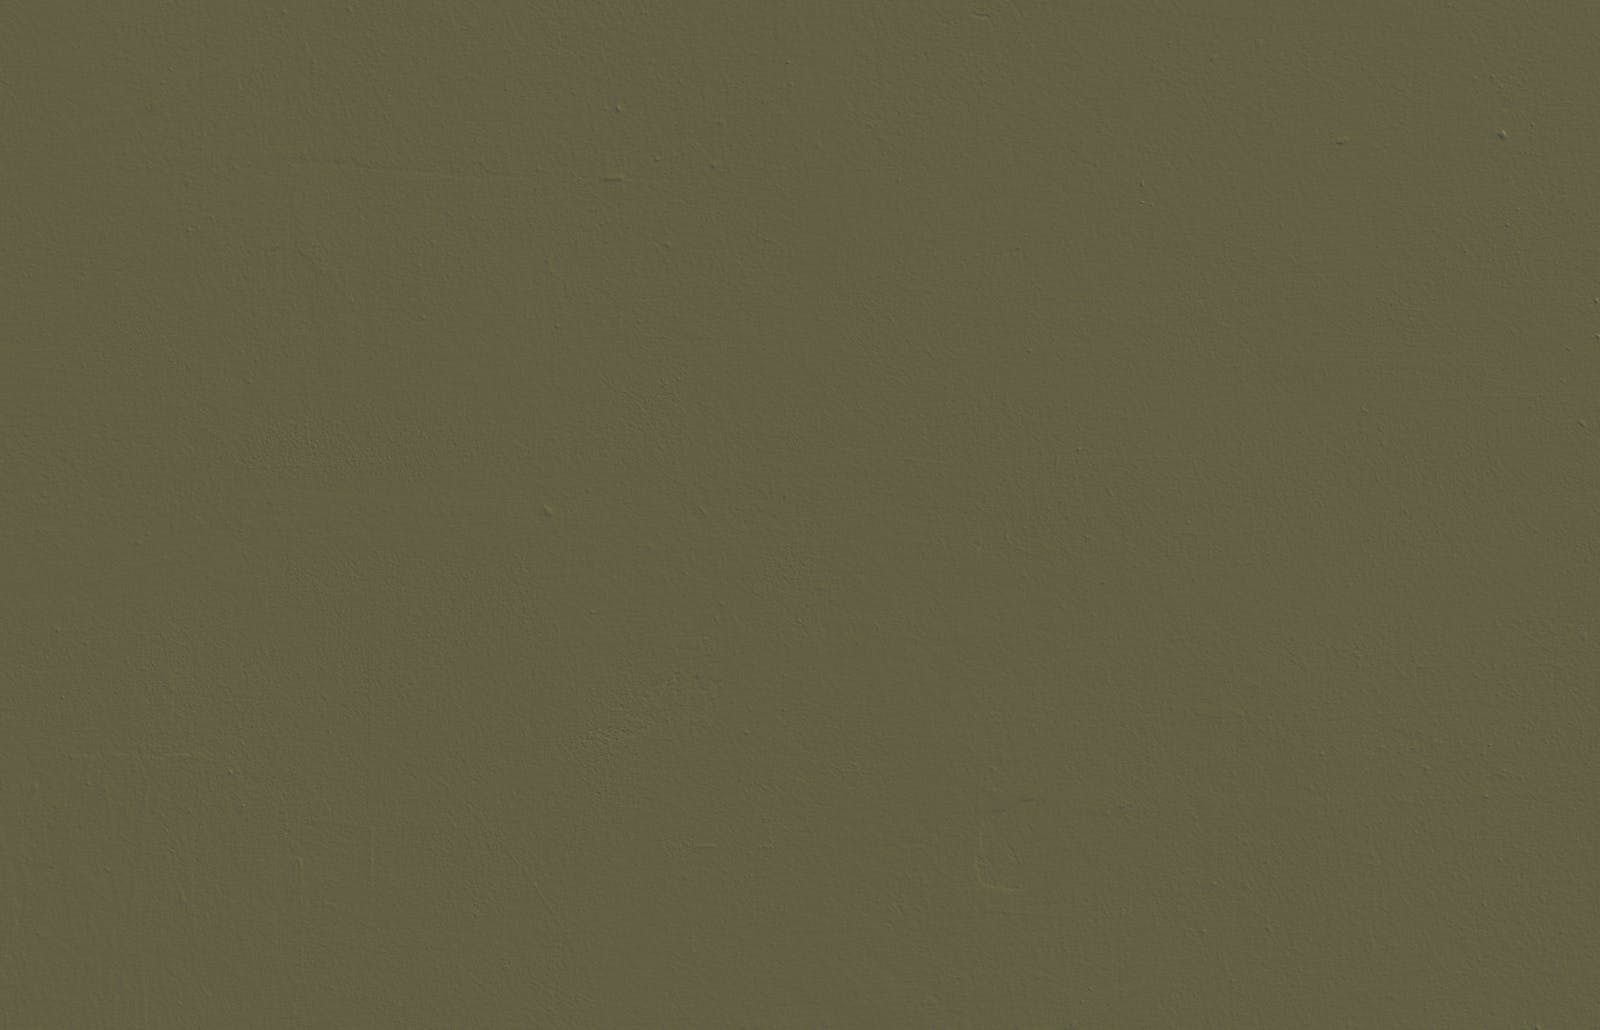 Textured wall painted in Lick Green 05 paint